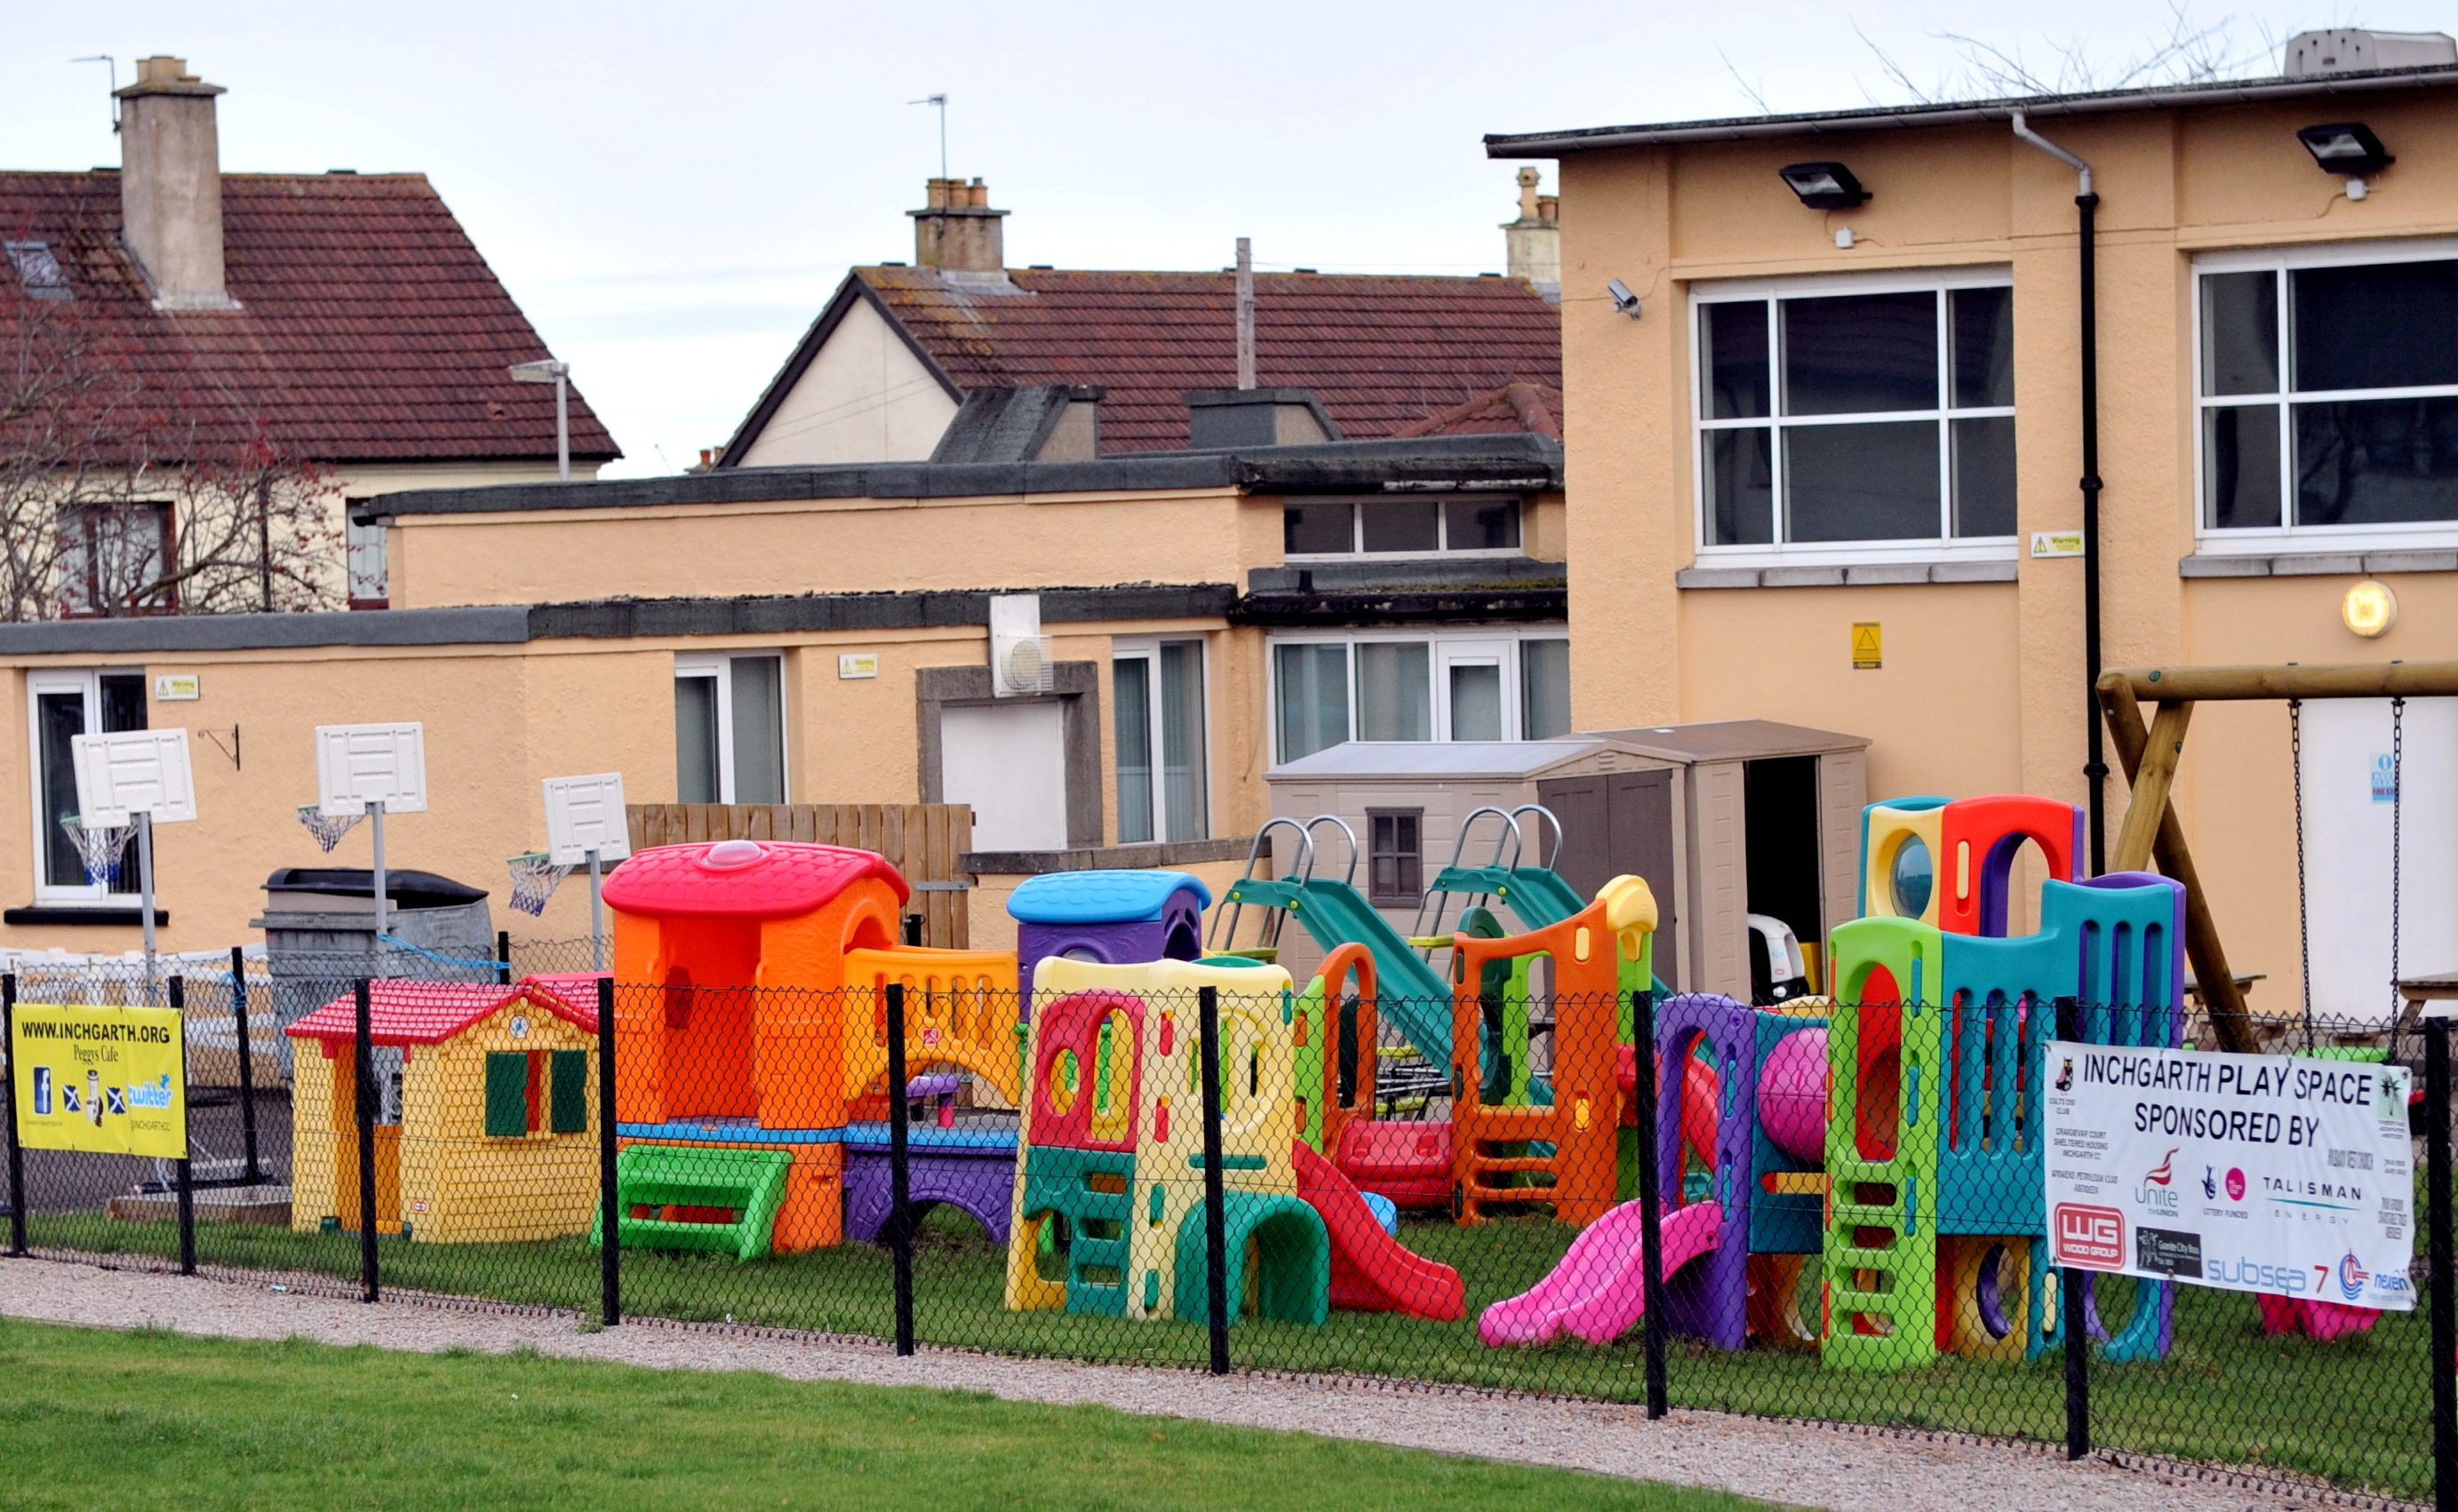 The children's play area at Inchgarth Community Centre